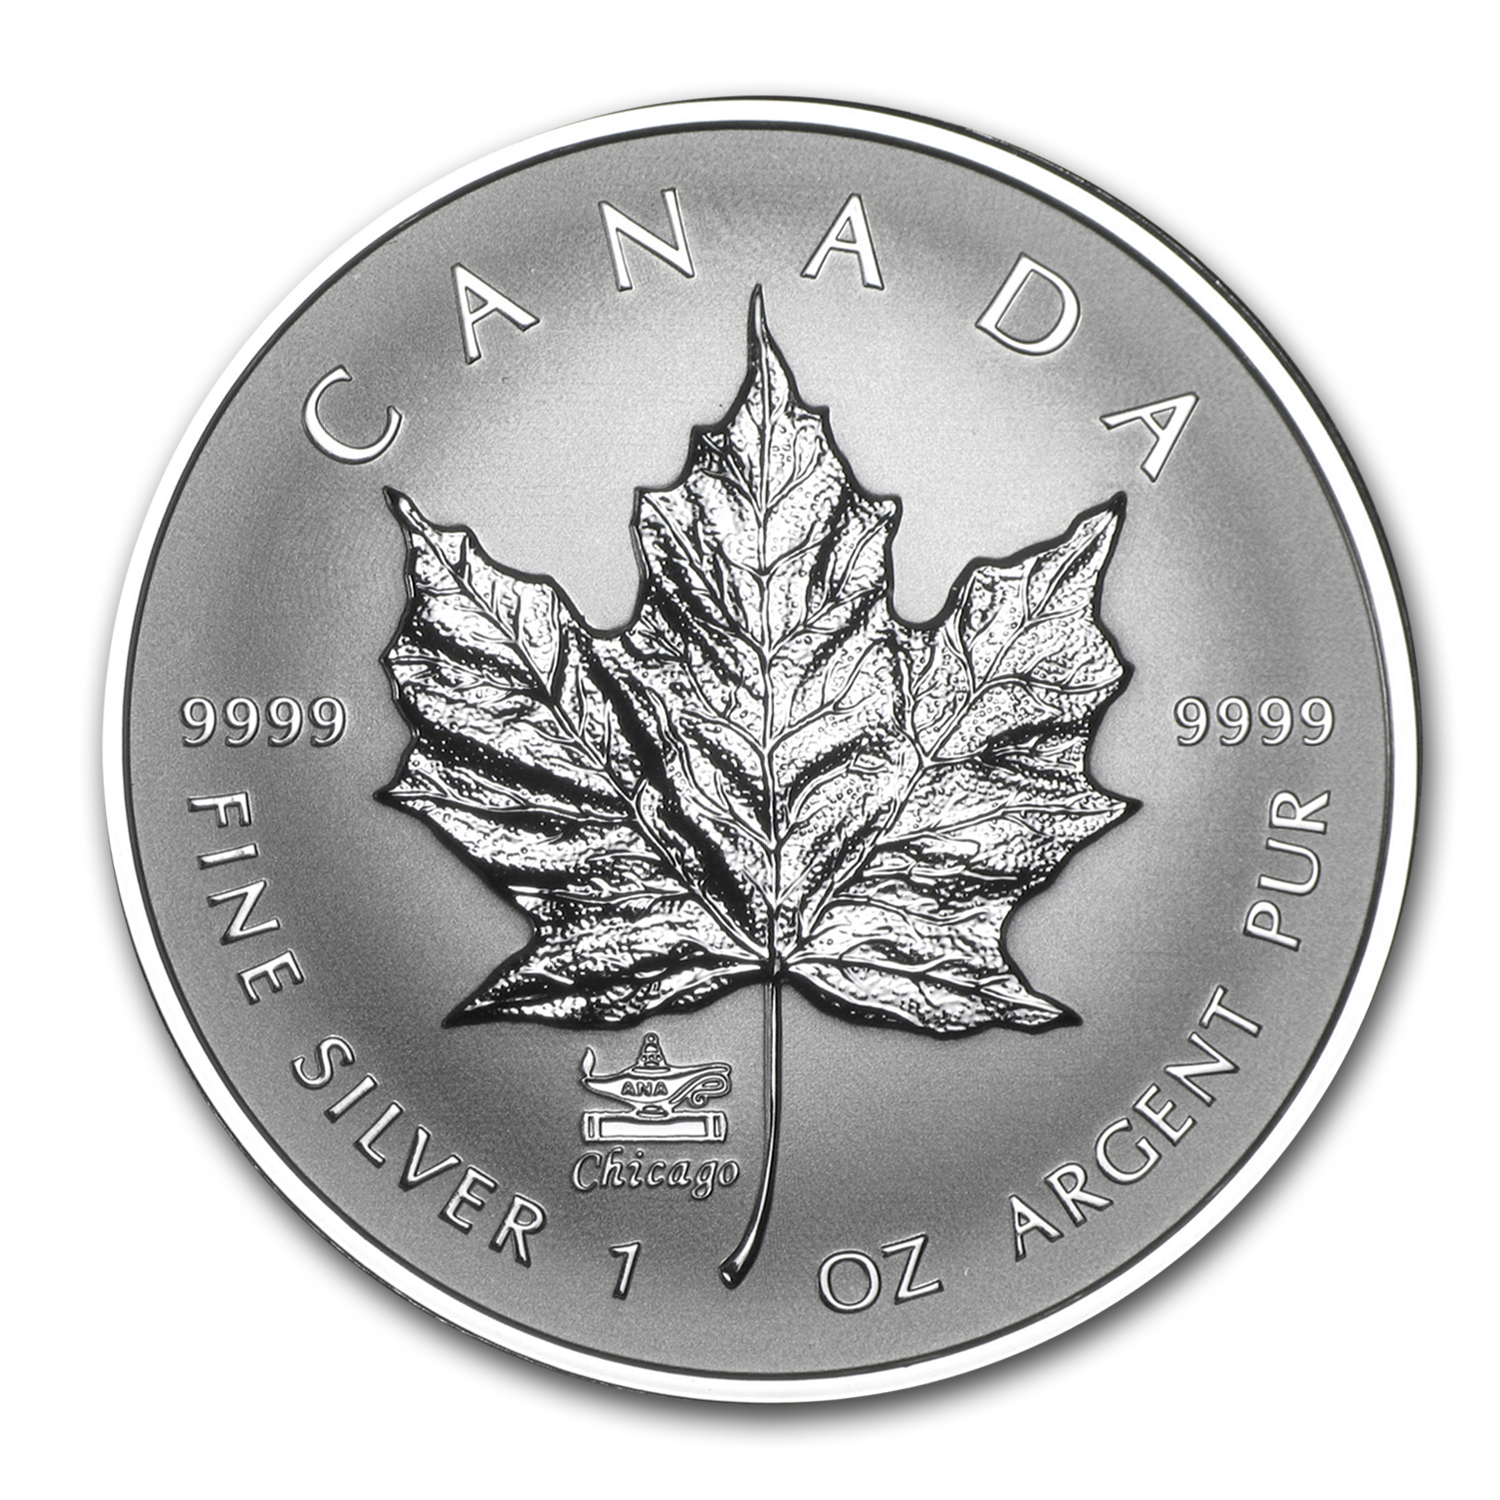 2014 Canada 1 oz Rev Proof Silver Maple Leaf ANA Privy Mark